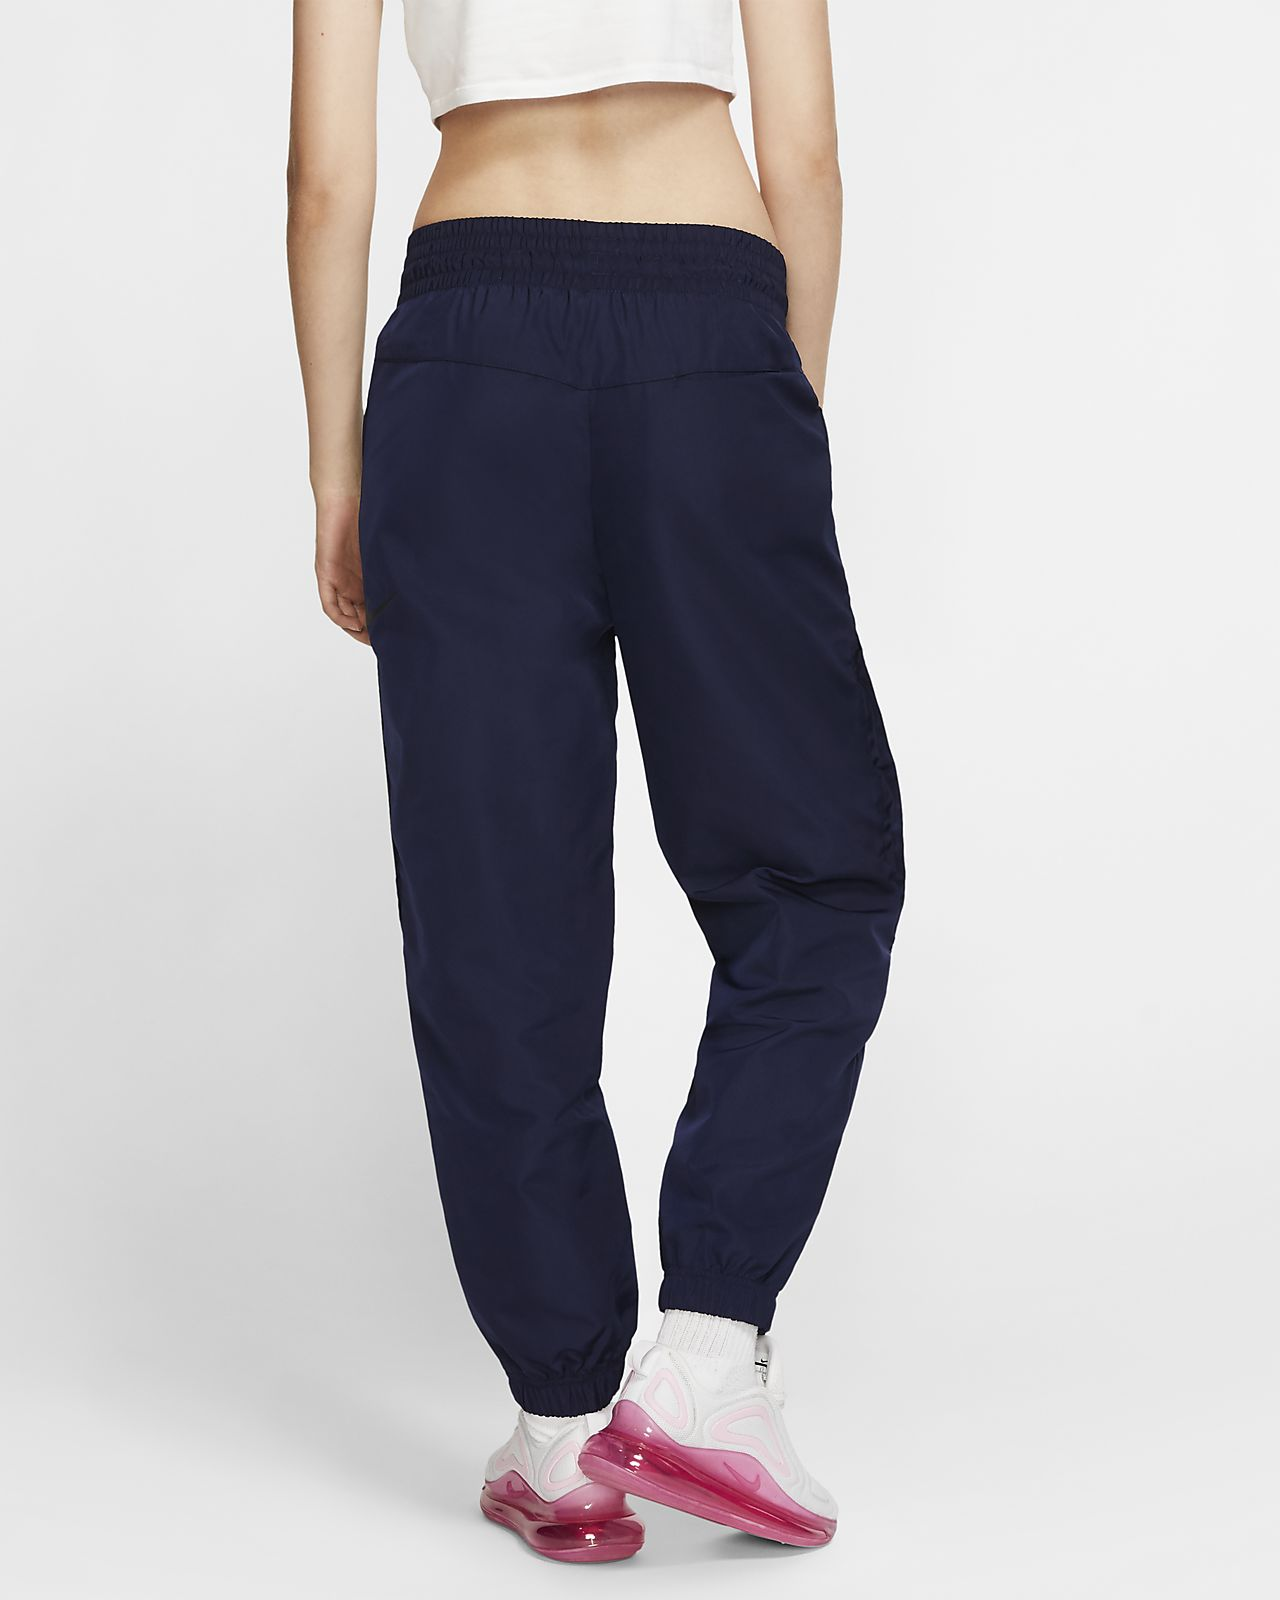 Nike Sportswear City Ready Woven Pants